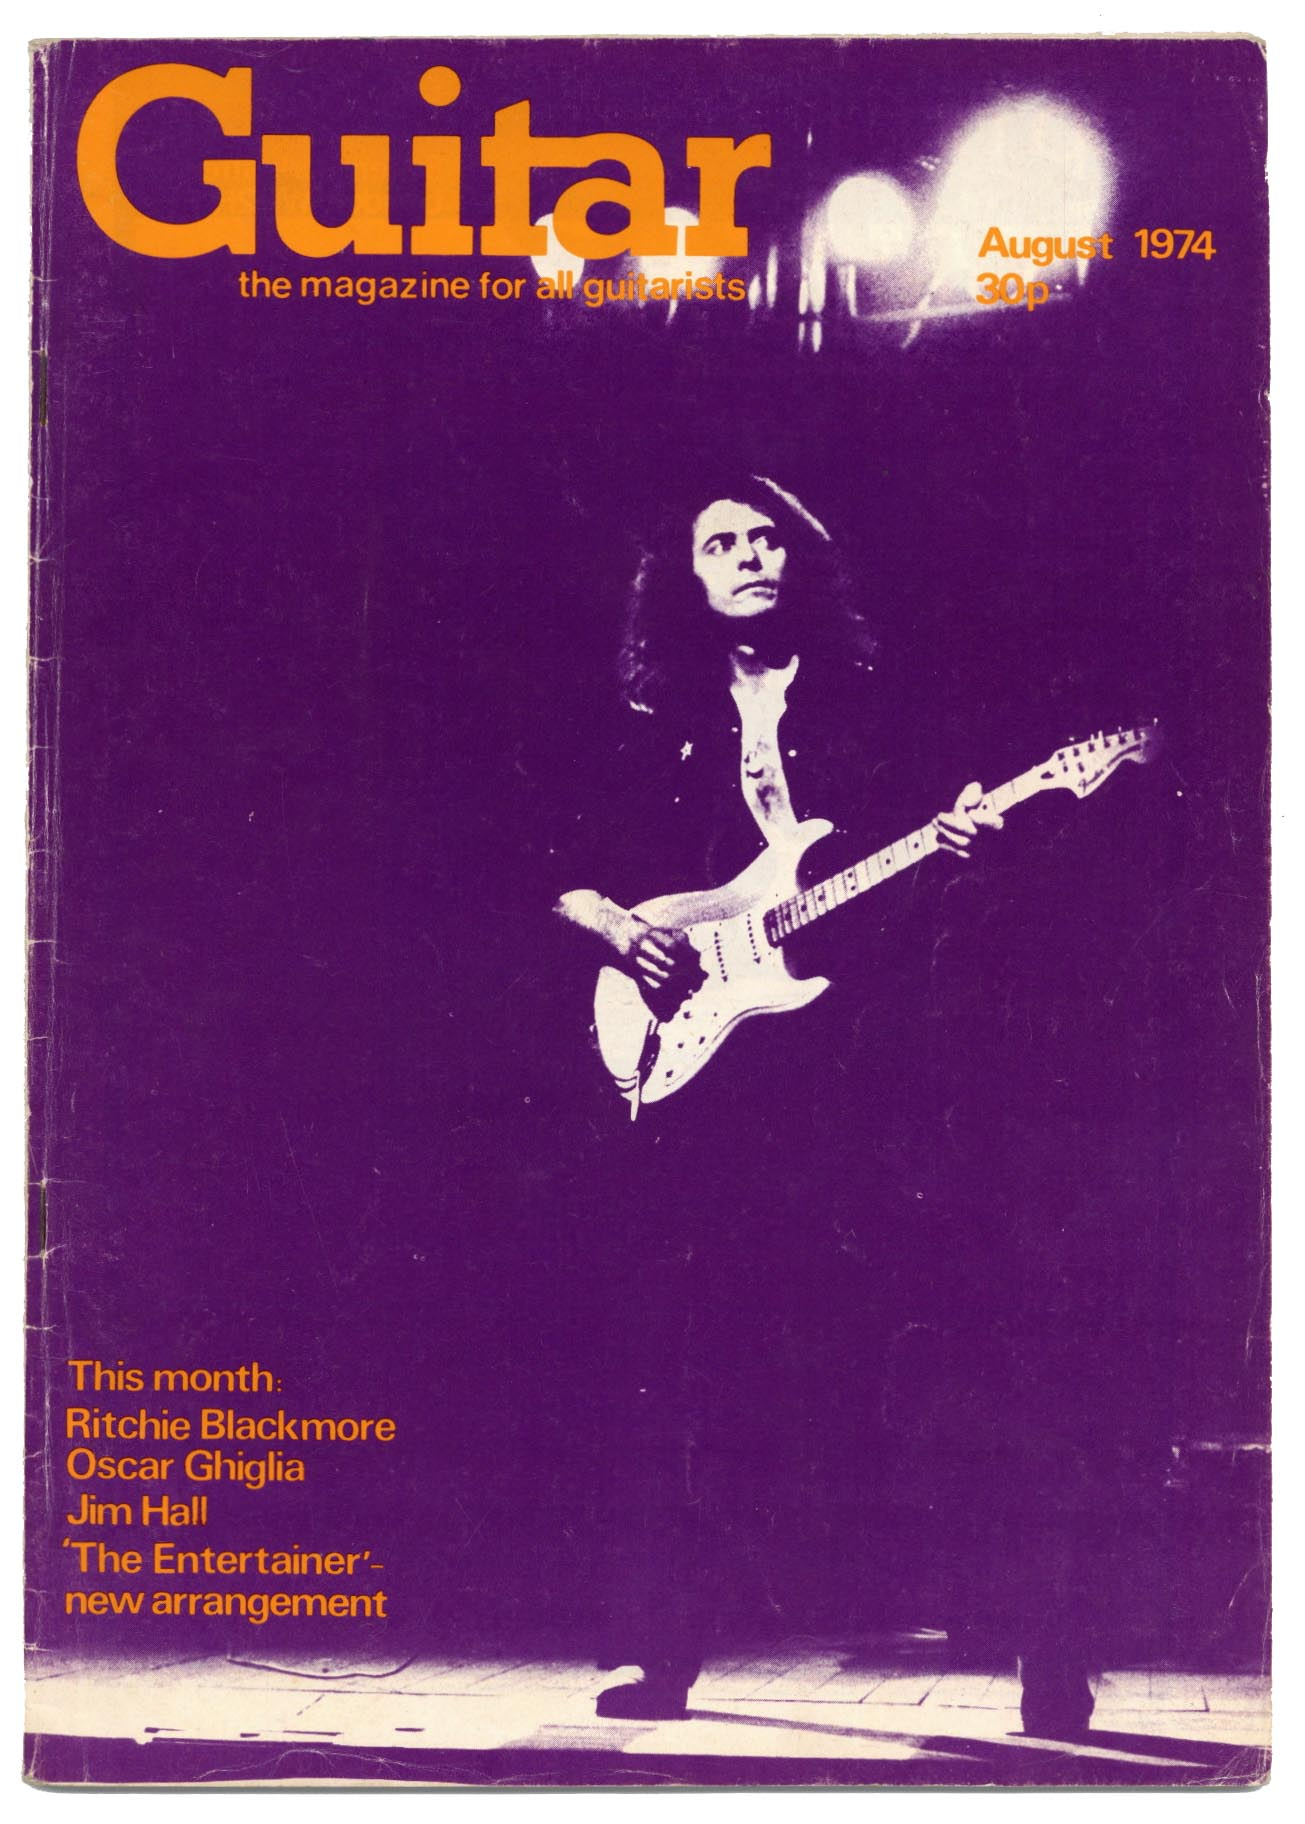 Guitar Magazine Vol 3 No 8 August 1974 Ritchie Blackmore Oscar Ghilia Jim Hall